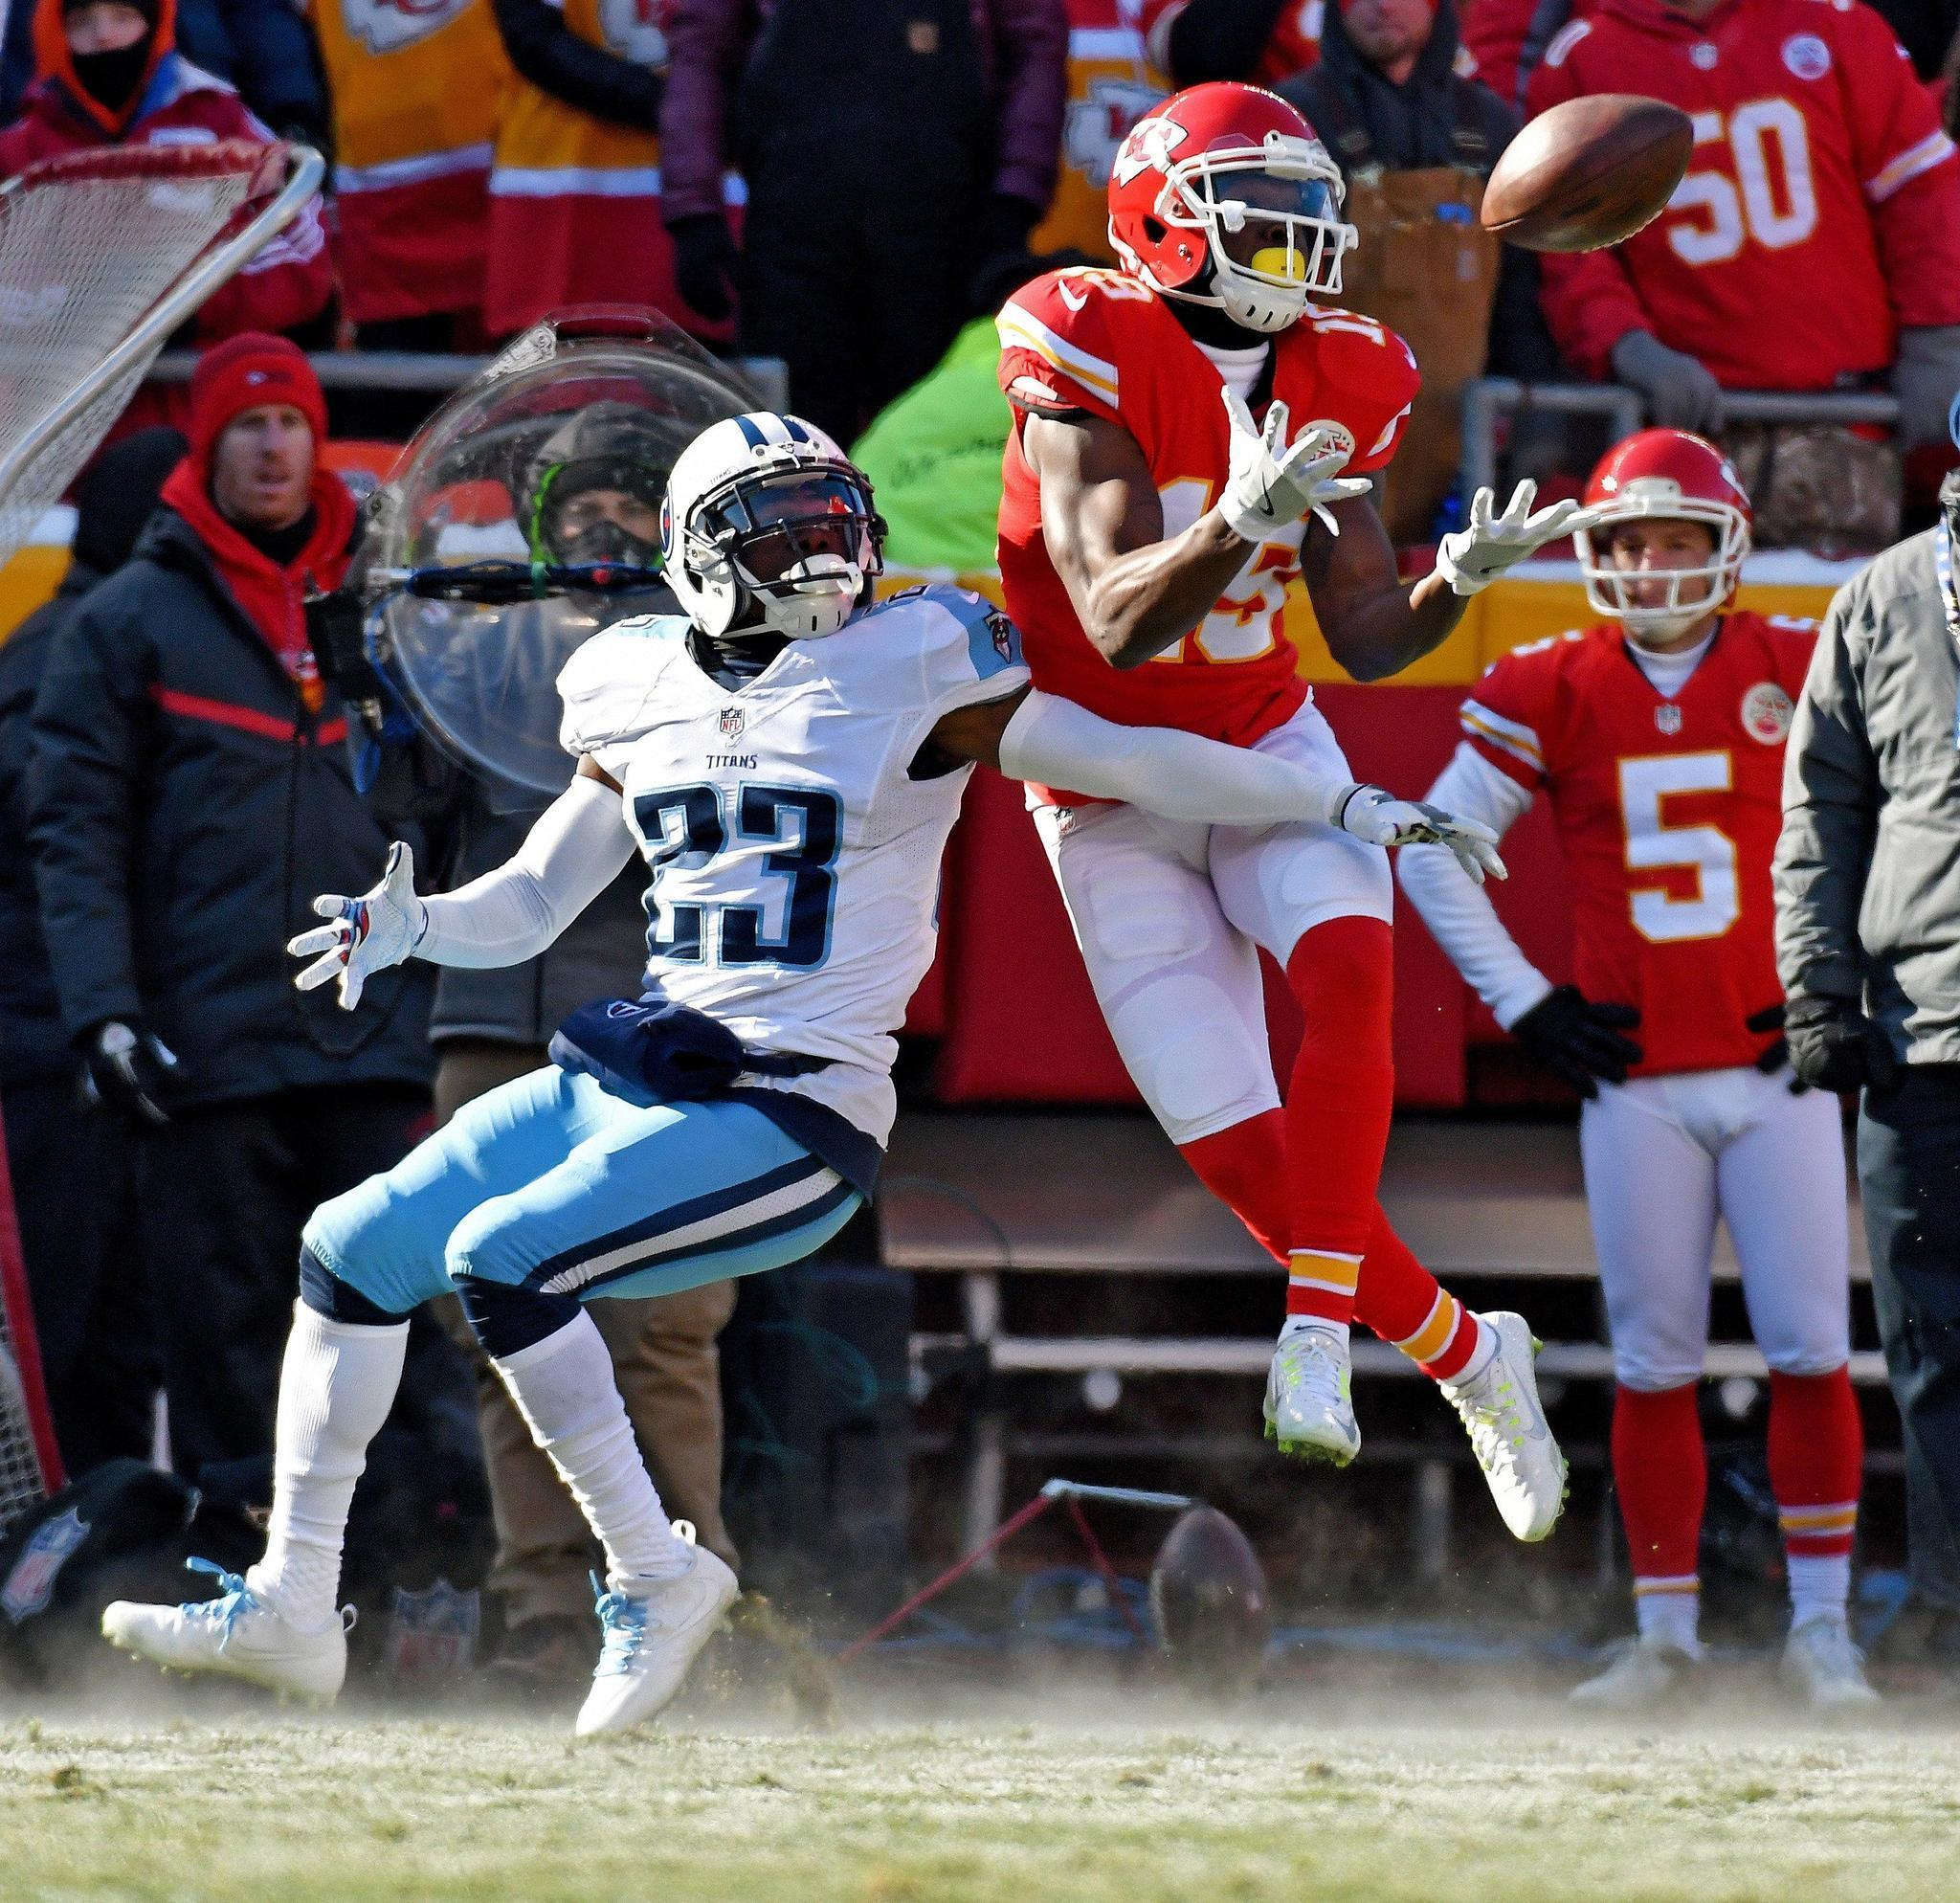 Bal-ravens-sign-free-agent-wide-receiver-jeremy-maclin-filling-one-of-their-biggest-needs-20170608